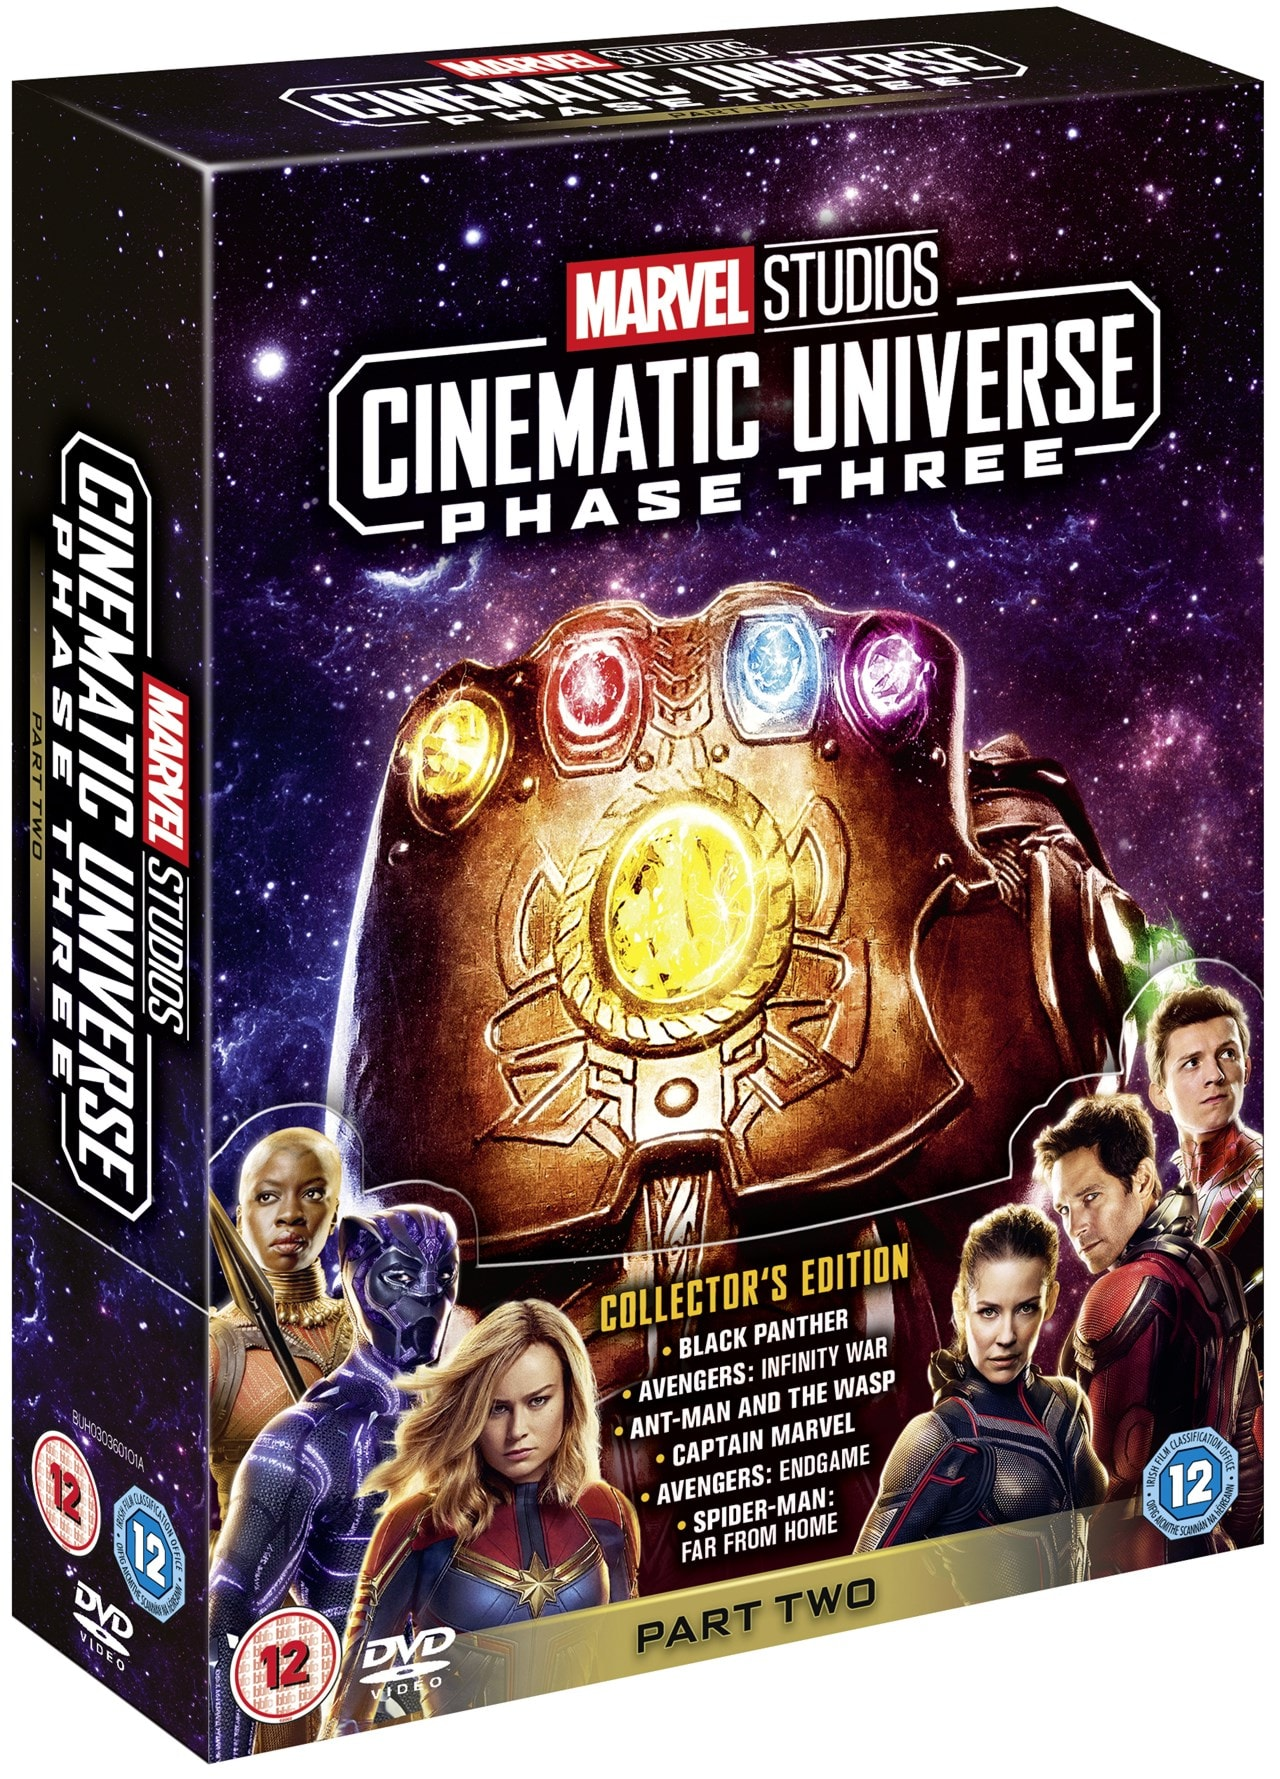 Marvel Studios Cinematic Universe: Phase Three - Part Two - 2